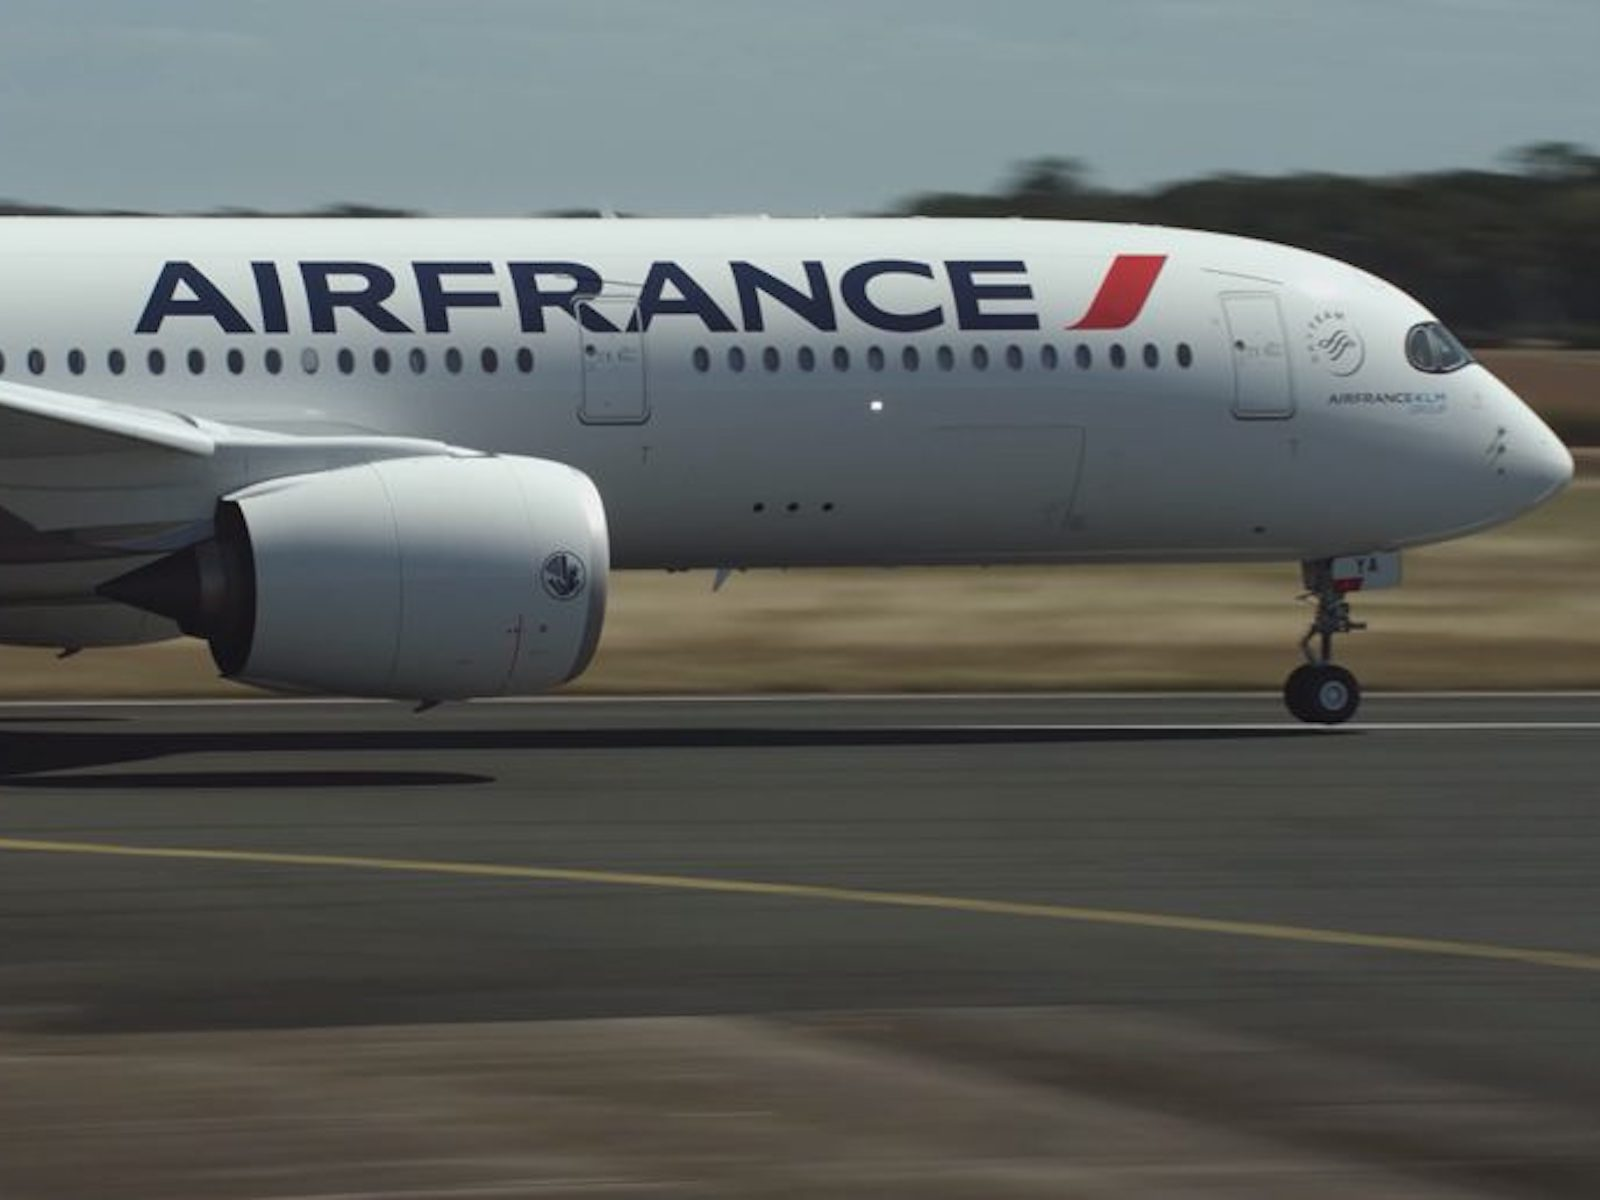 Air France Business Class Review: A350 From Paris to São Paulo